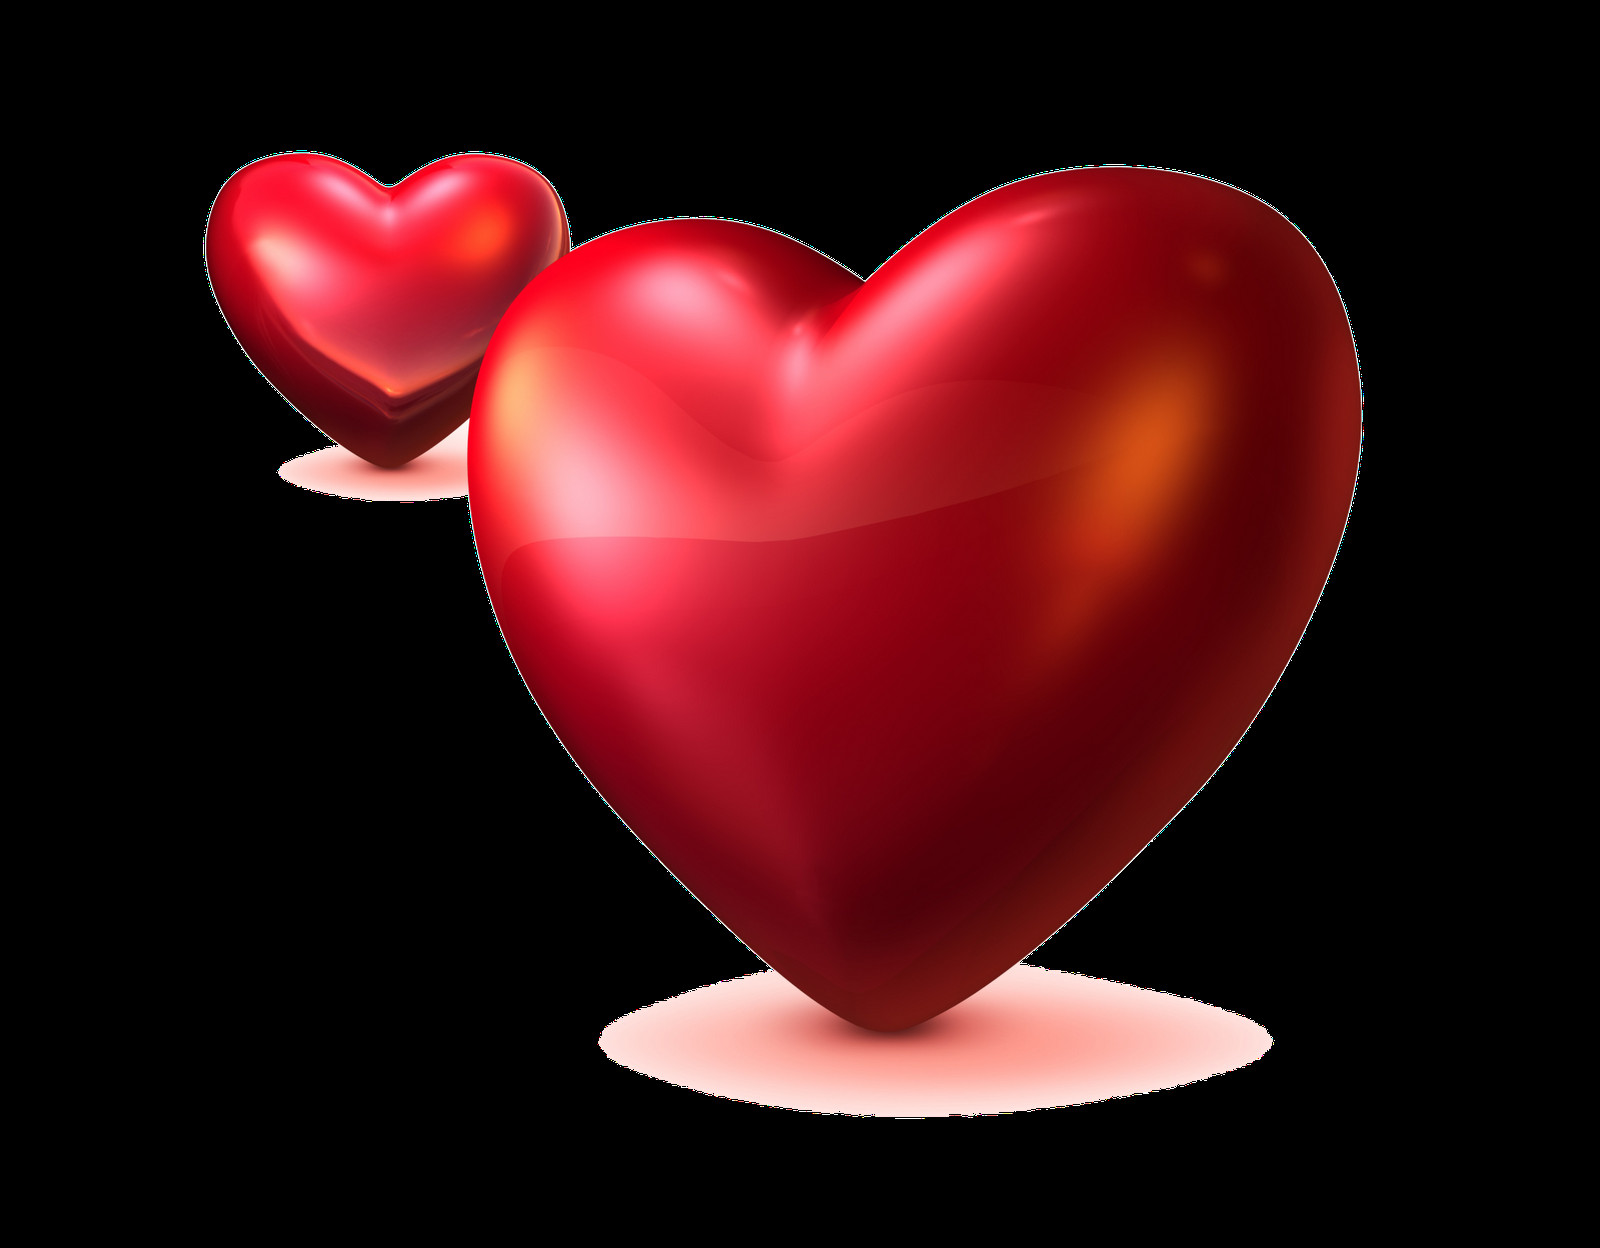 Red Heart with Love Luxury Love Png Transparent Png Of Awesome 41 Ideas Red Heart with Love